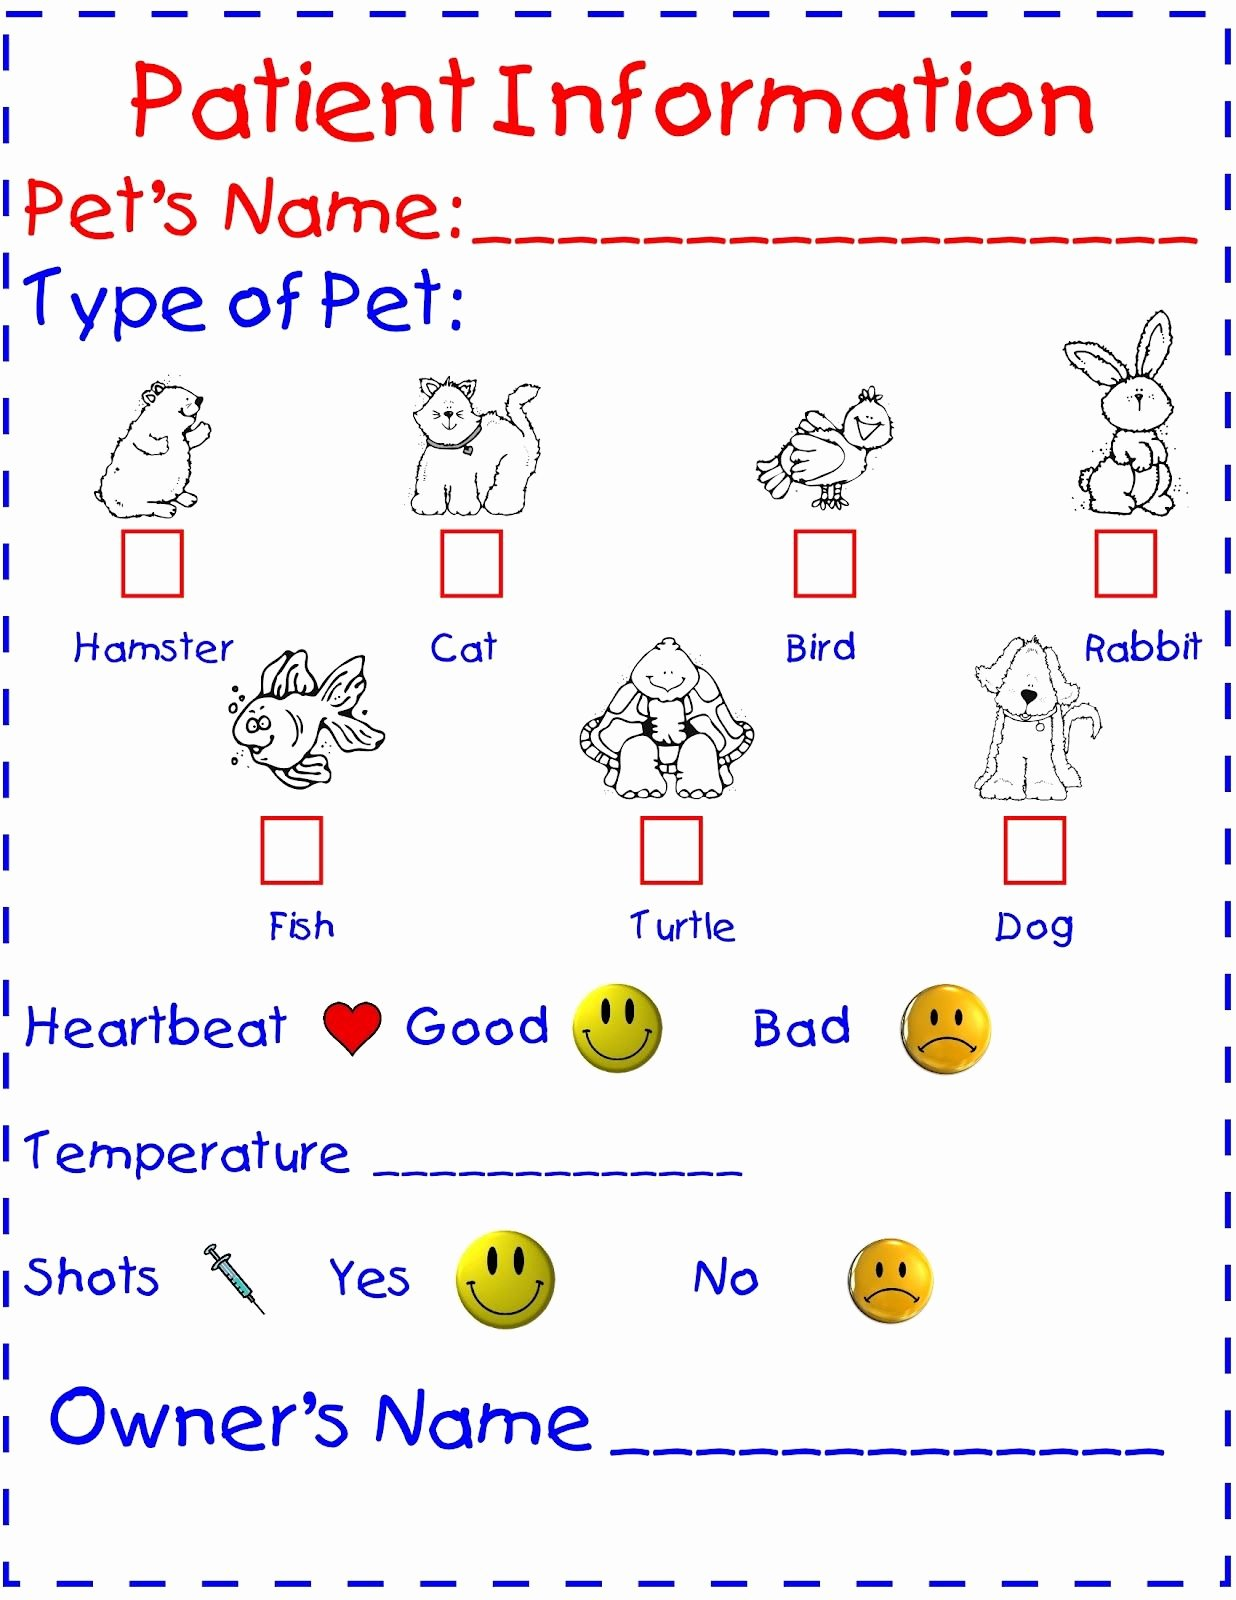 Veterinarian Worksheets for Preschoolers Kids Kindergarten Night Owls March Vet Center